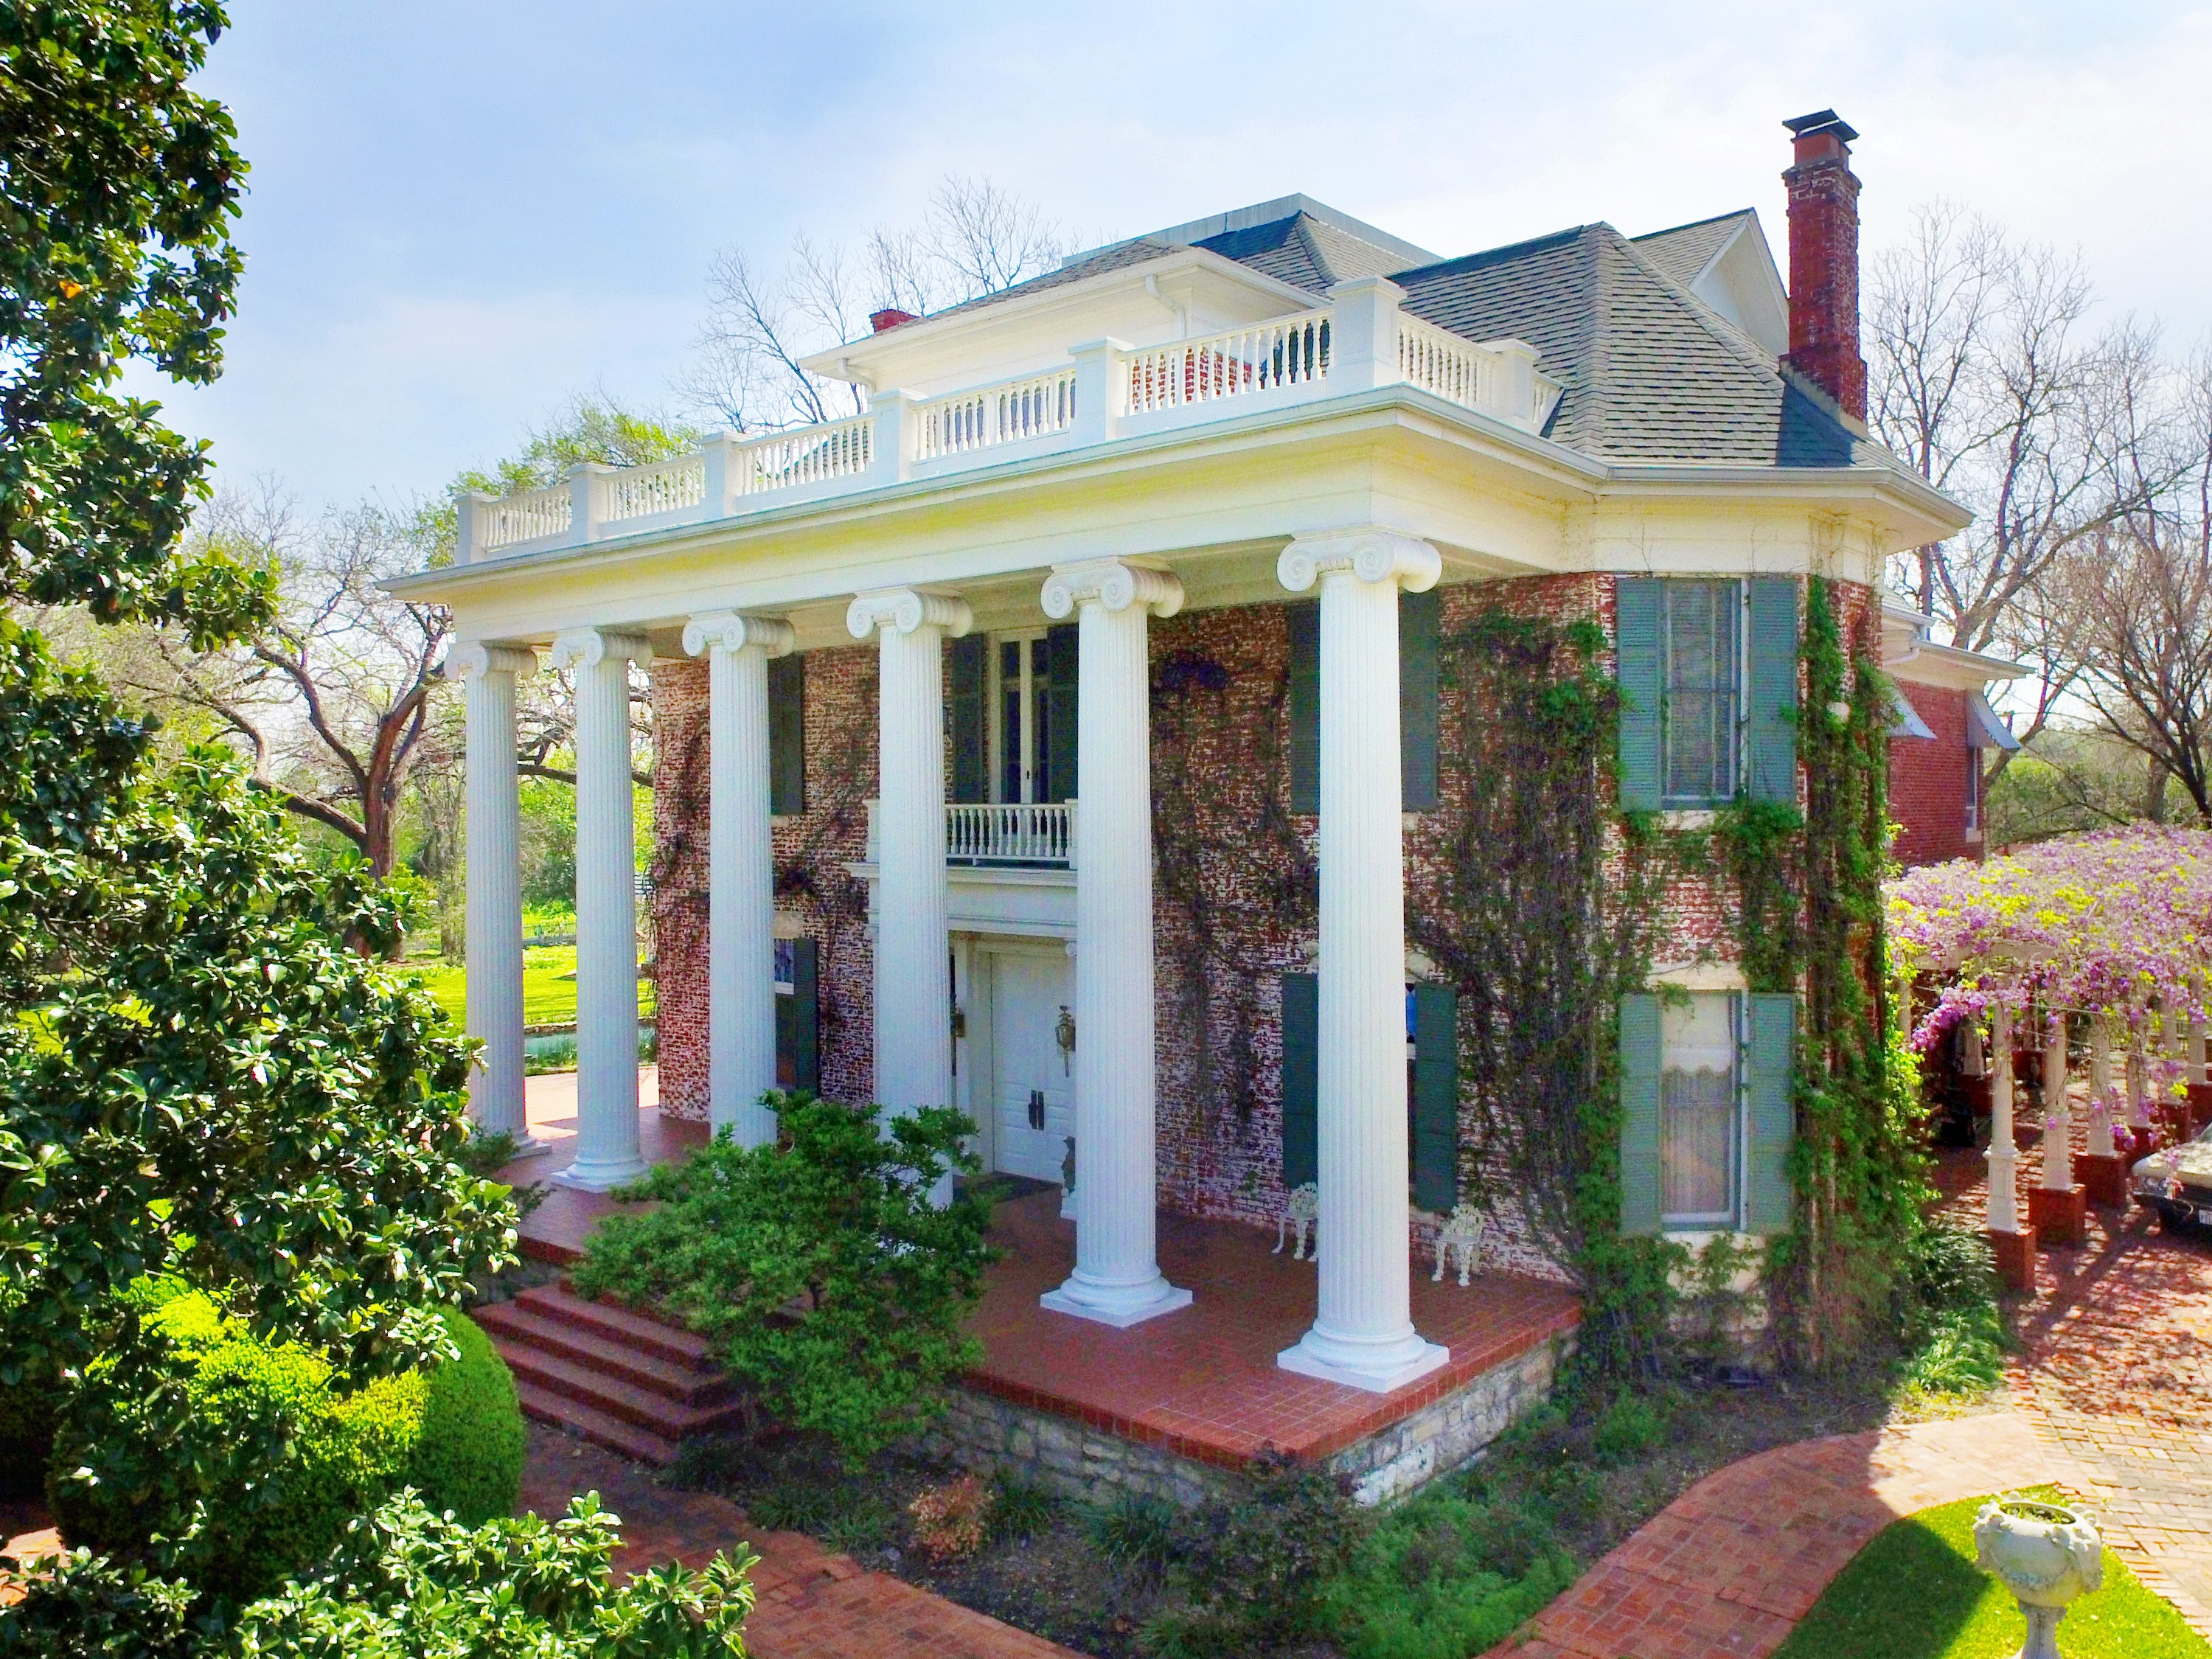 Three story red brick Colonial Revival